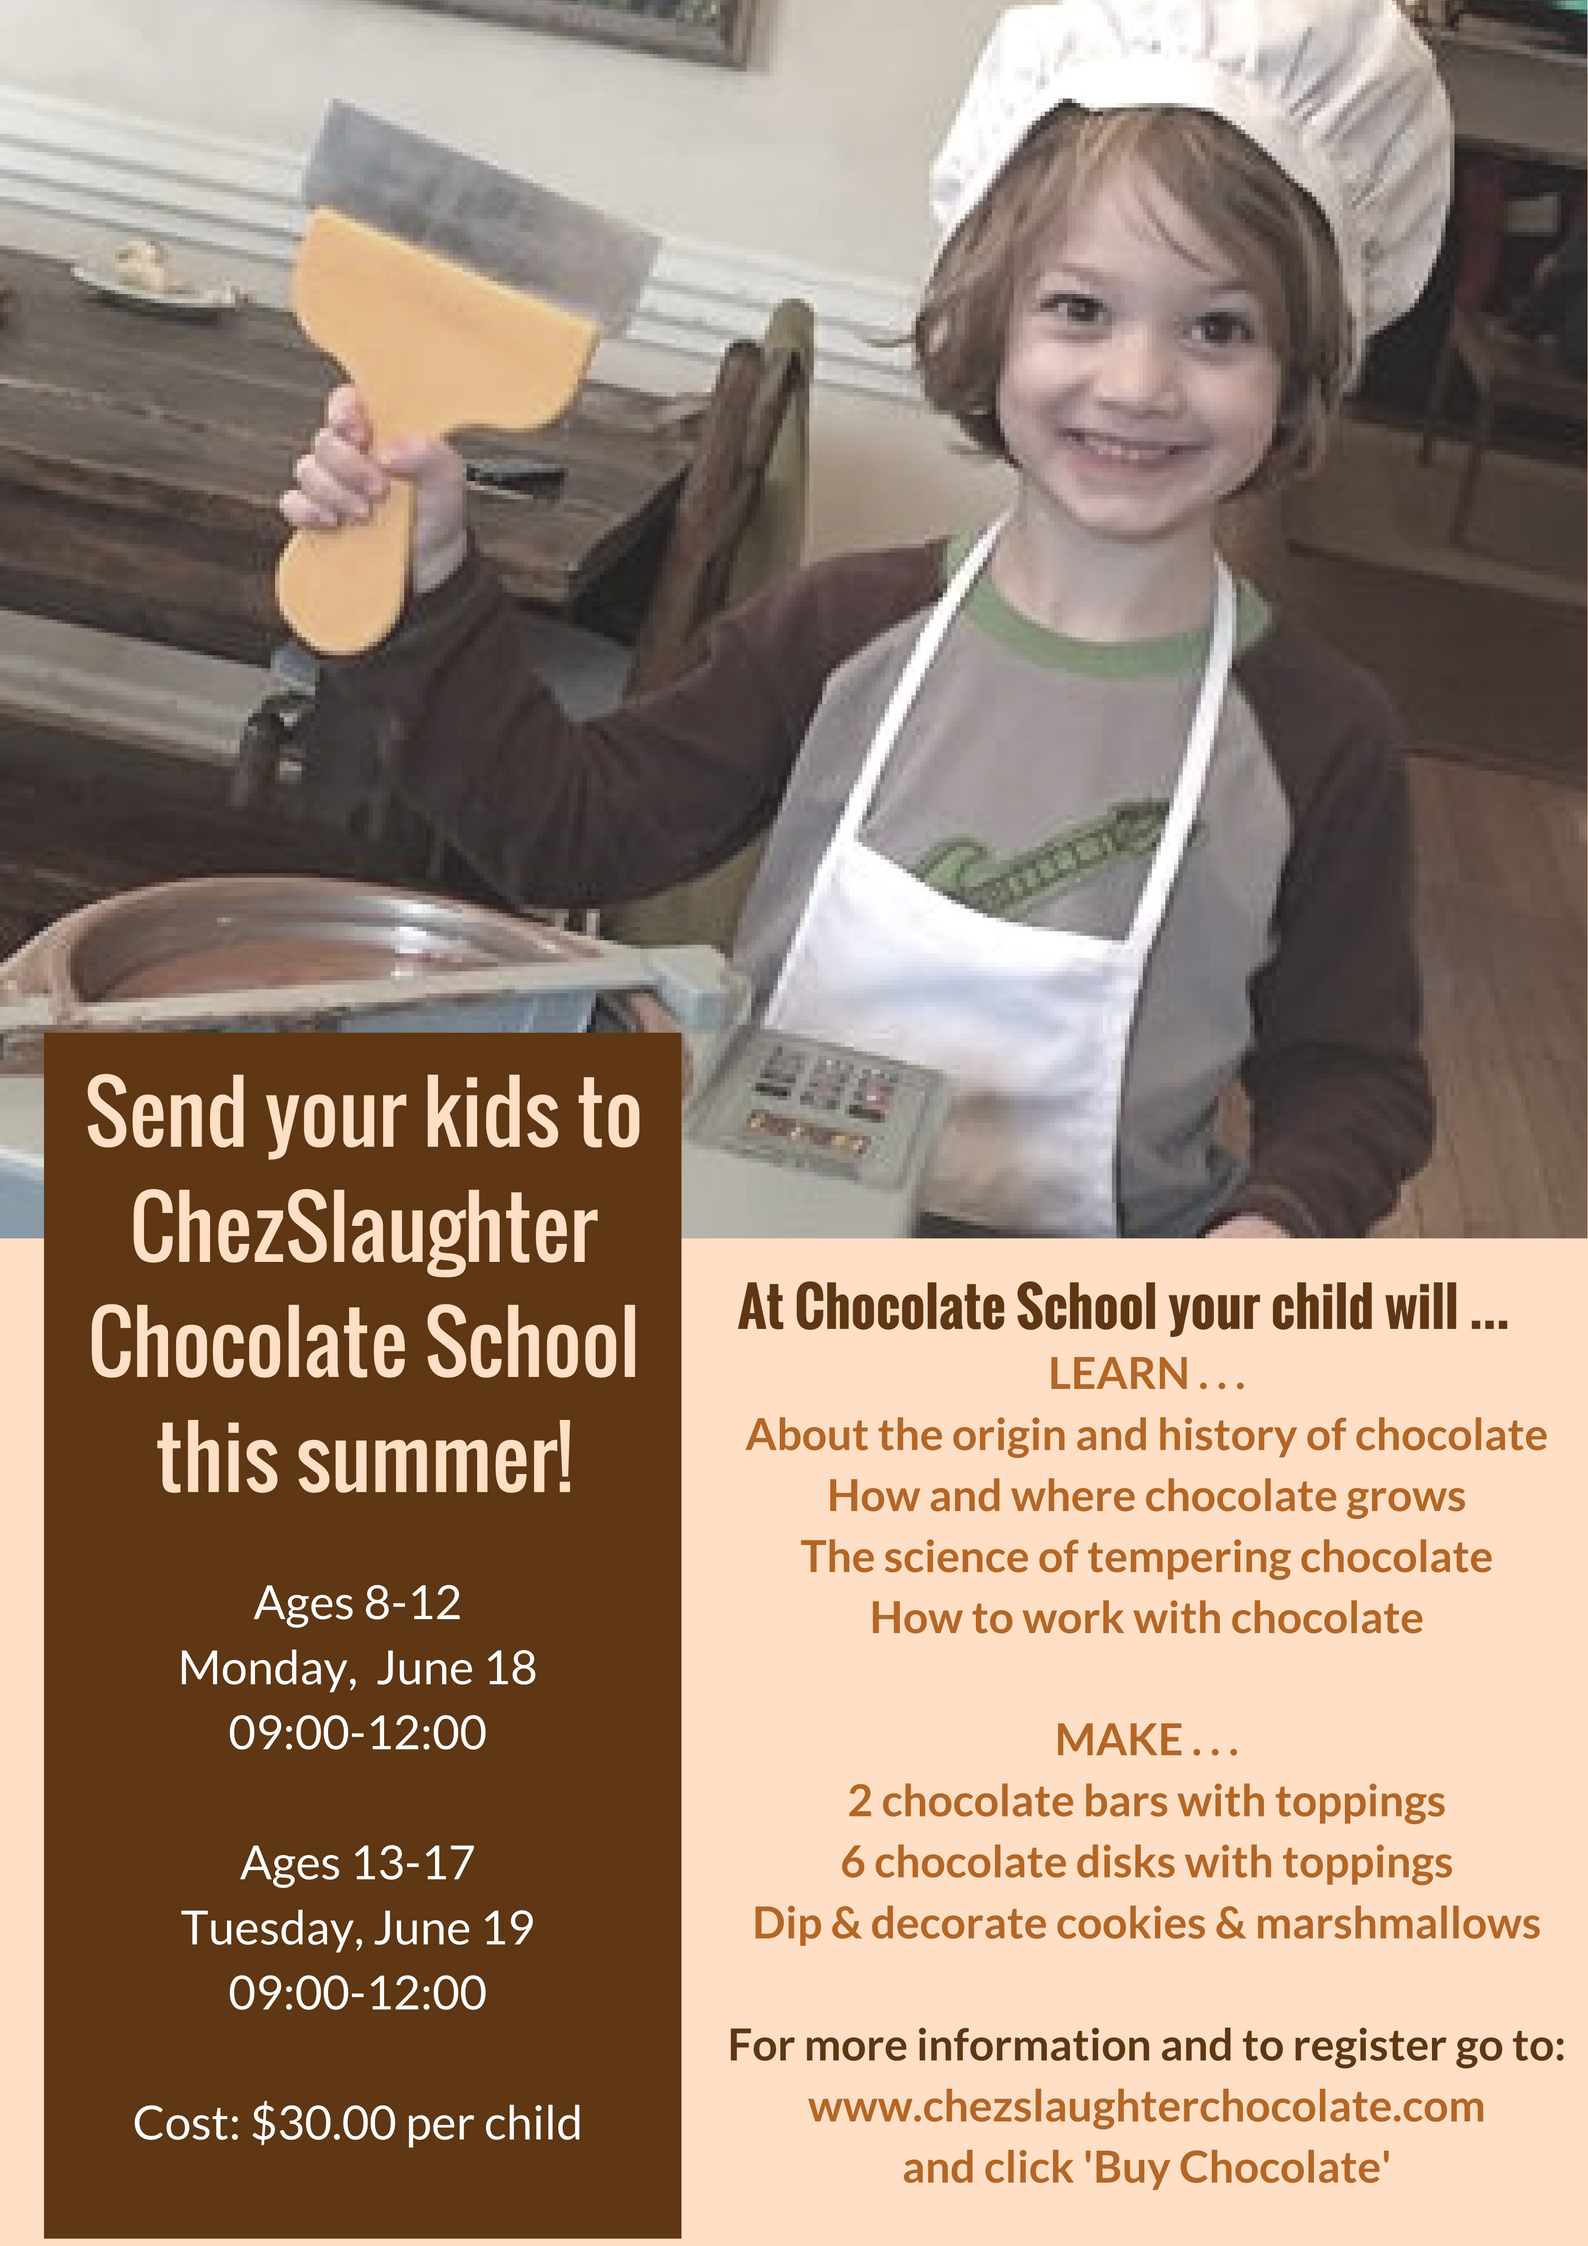 Send Your Kids To Chocolate School!